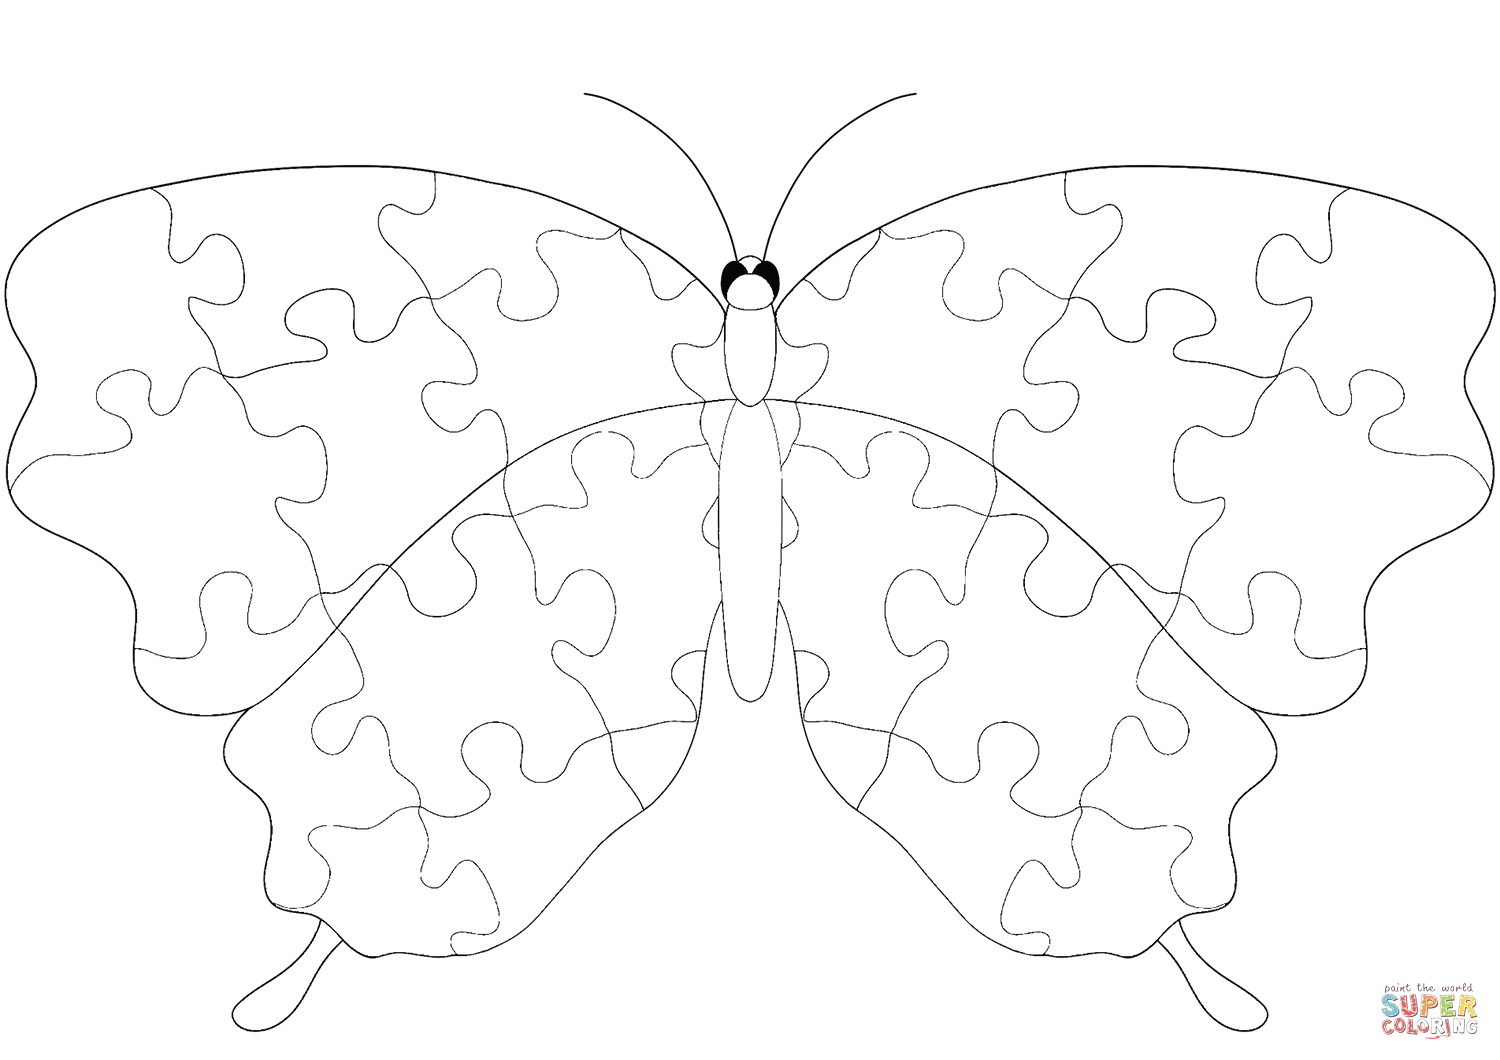 Butterfly With Jigsaw Puzzle Pattern Coloring Page Free Printable Coloring Pages Pattern Coloring Pages Free Printable Coloring Pages Free Printable Coloring [ 1060 x 1500 Pixel ]